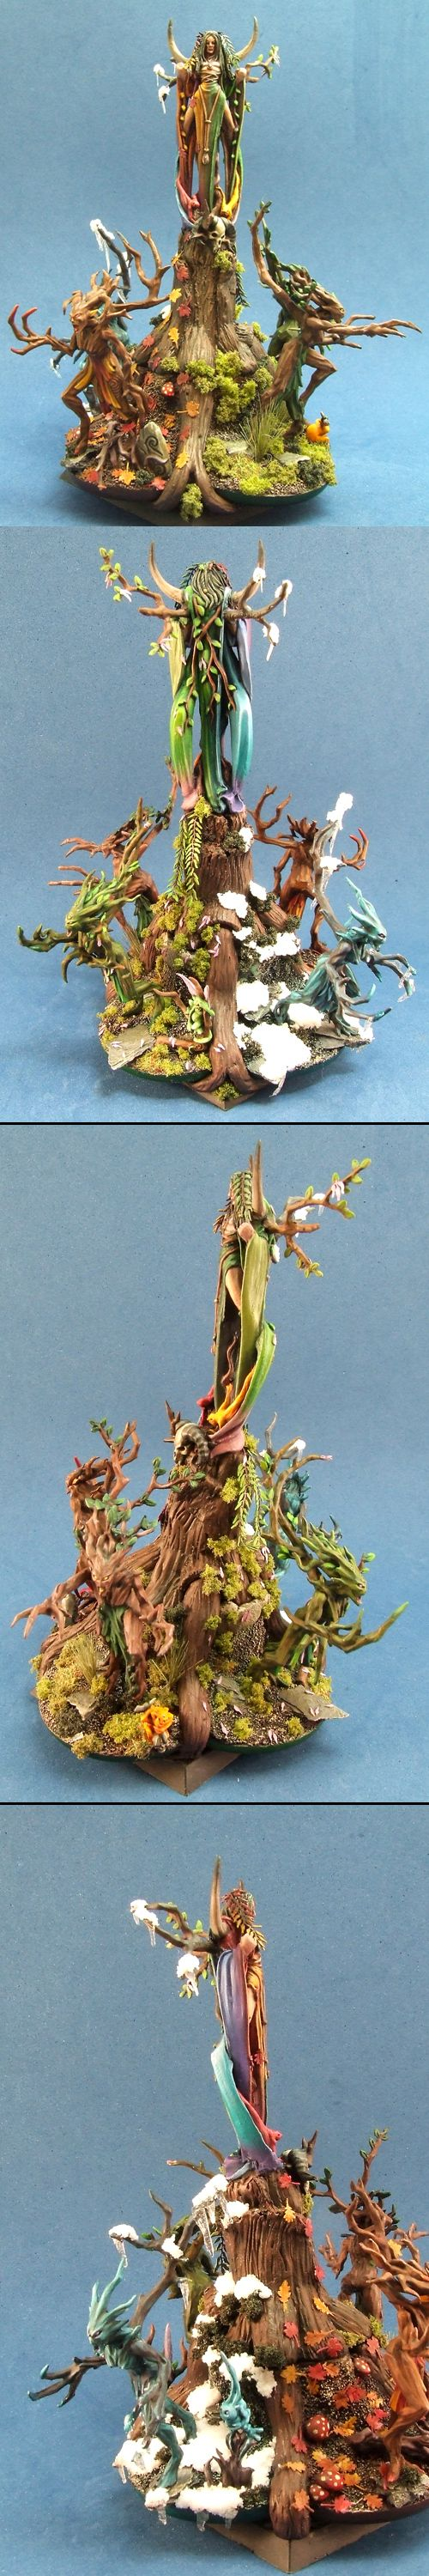 Iron painter round 5 Seasons.. Wood Elf spellsinger